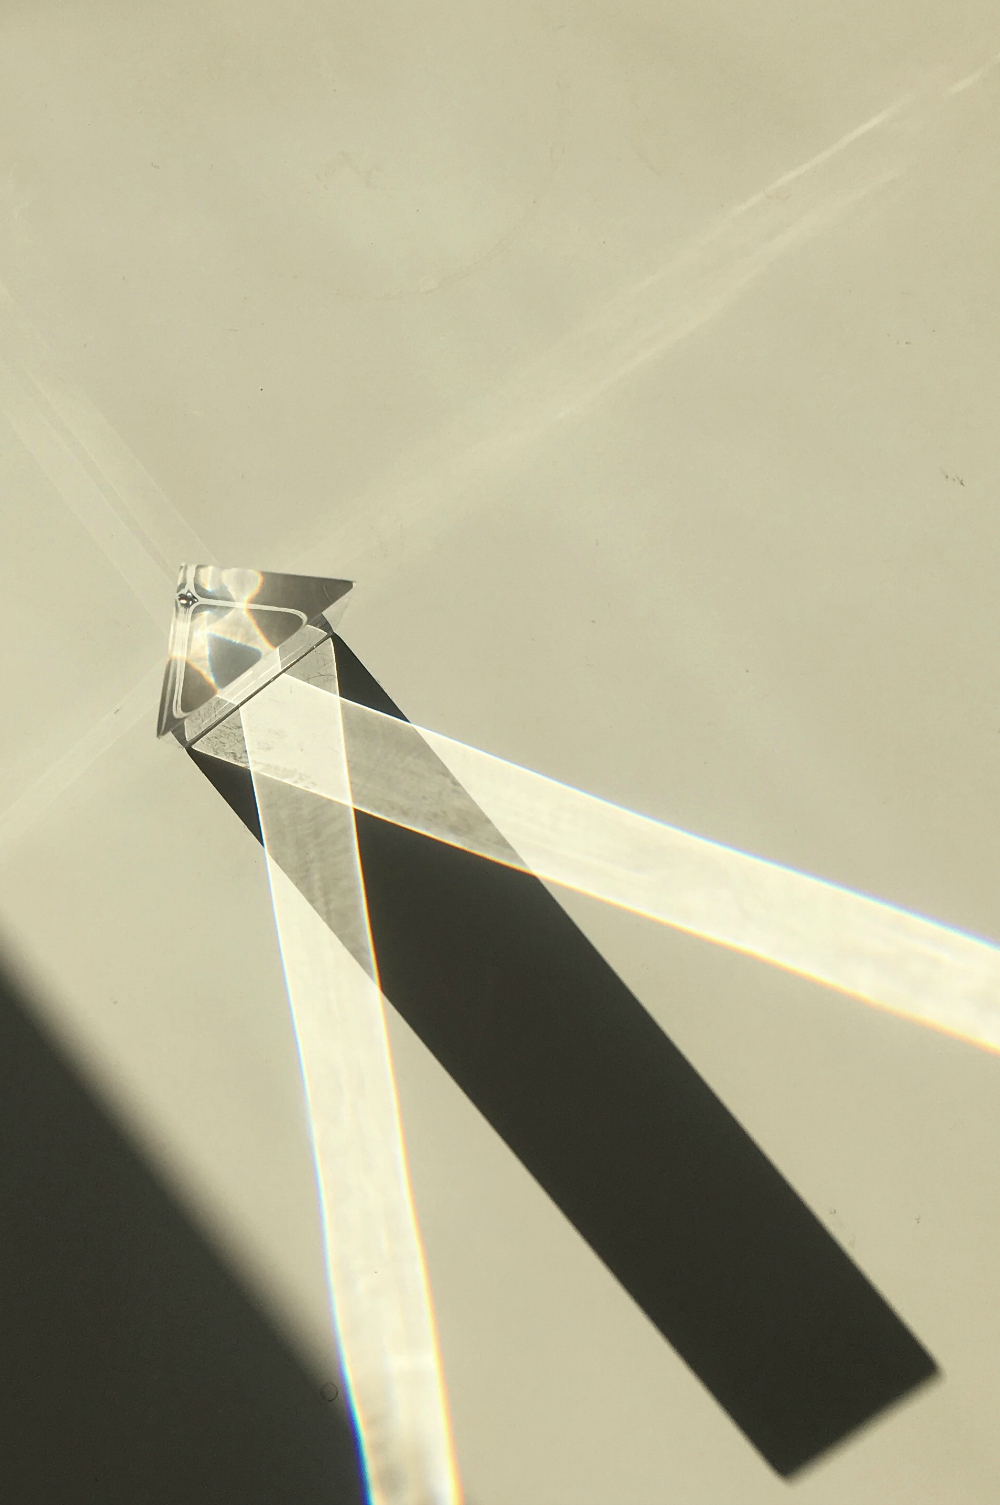 The perspex prism my son likes to play with and leave in random places. Impossible for me to ignore when the sun hits it.